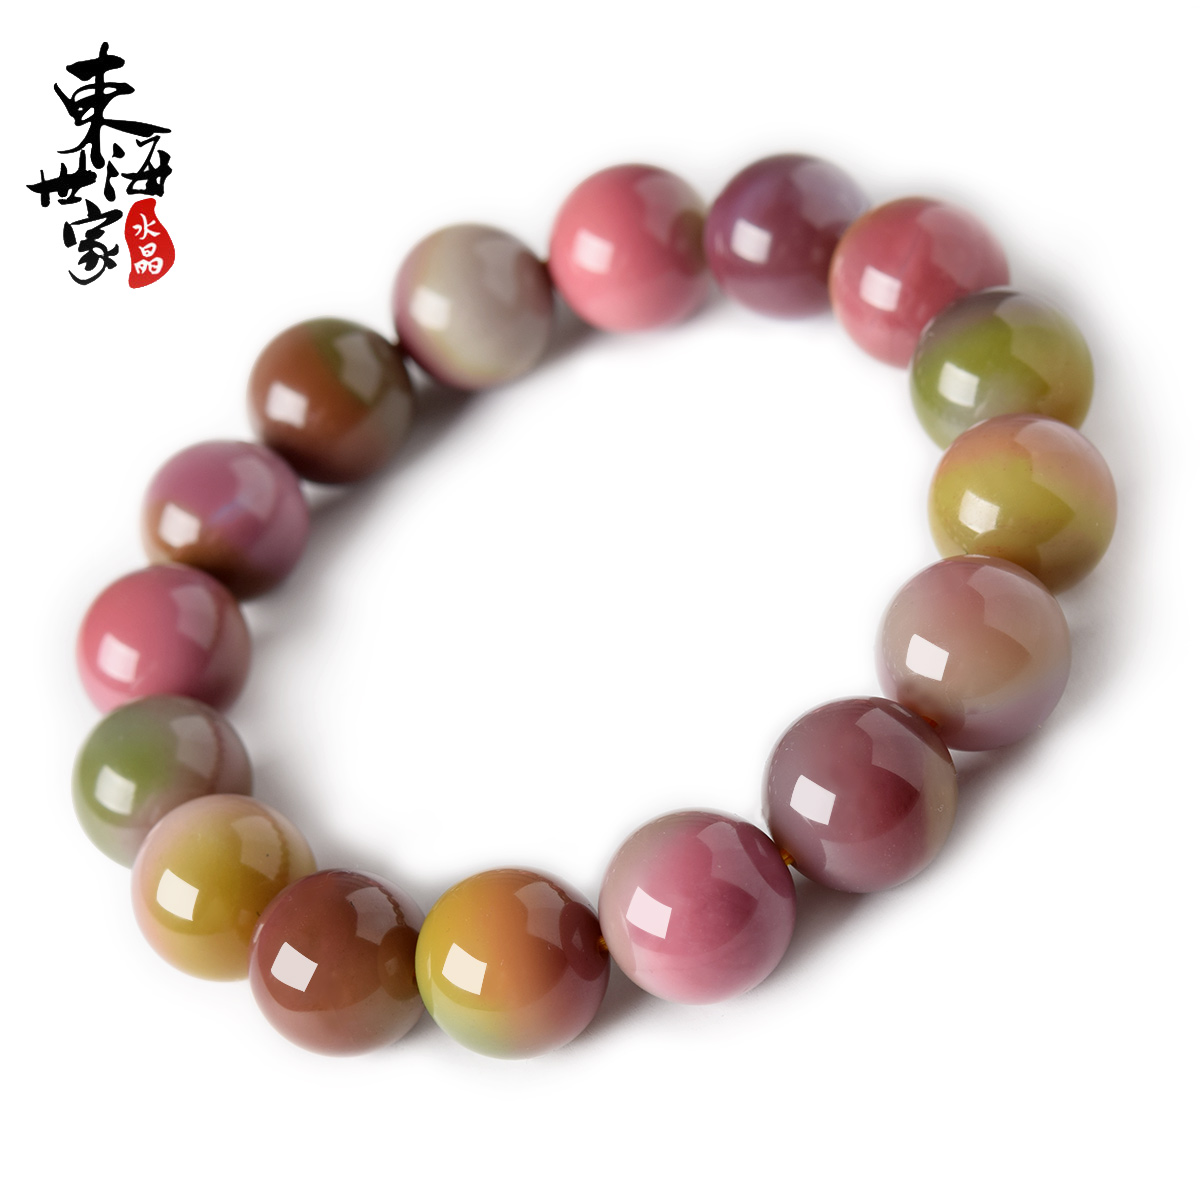 Donghai Shijia Yanyuan agate bracelet for women and men